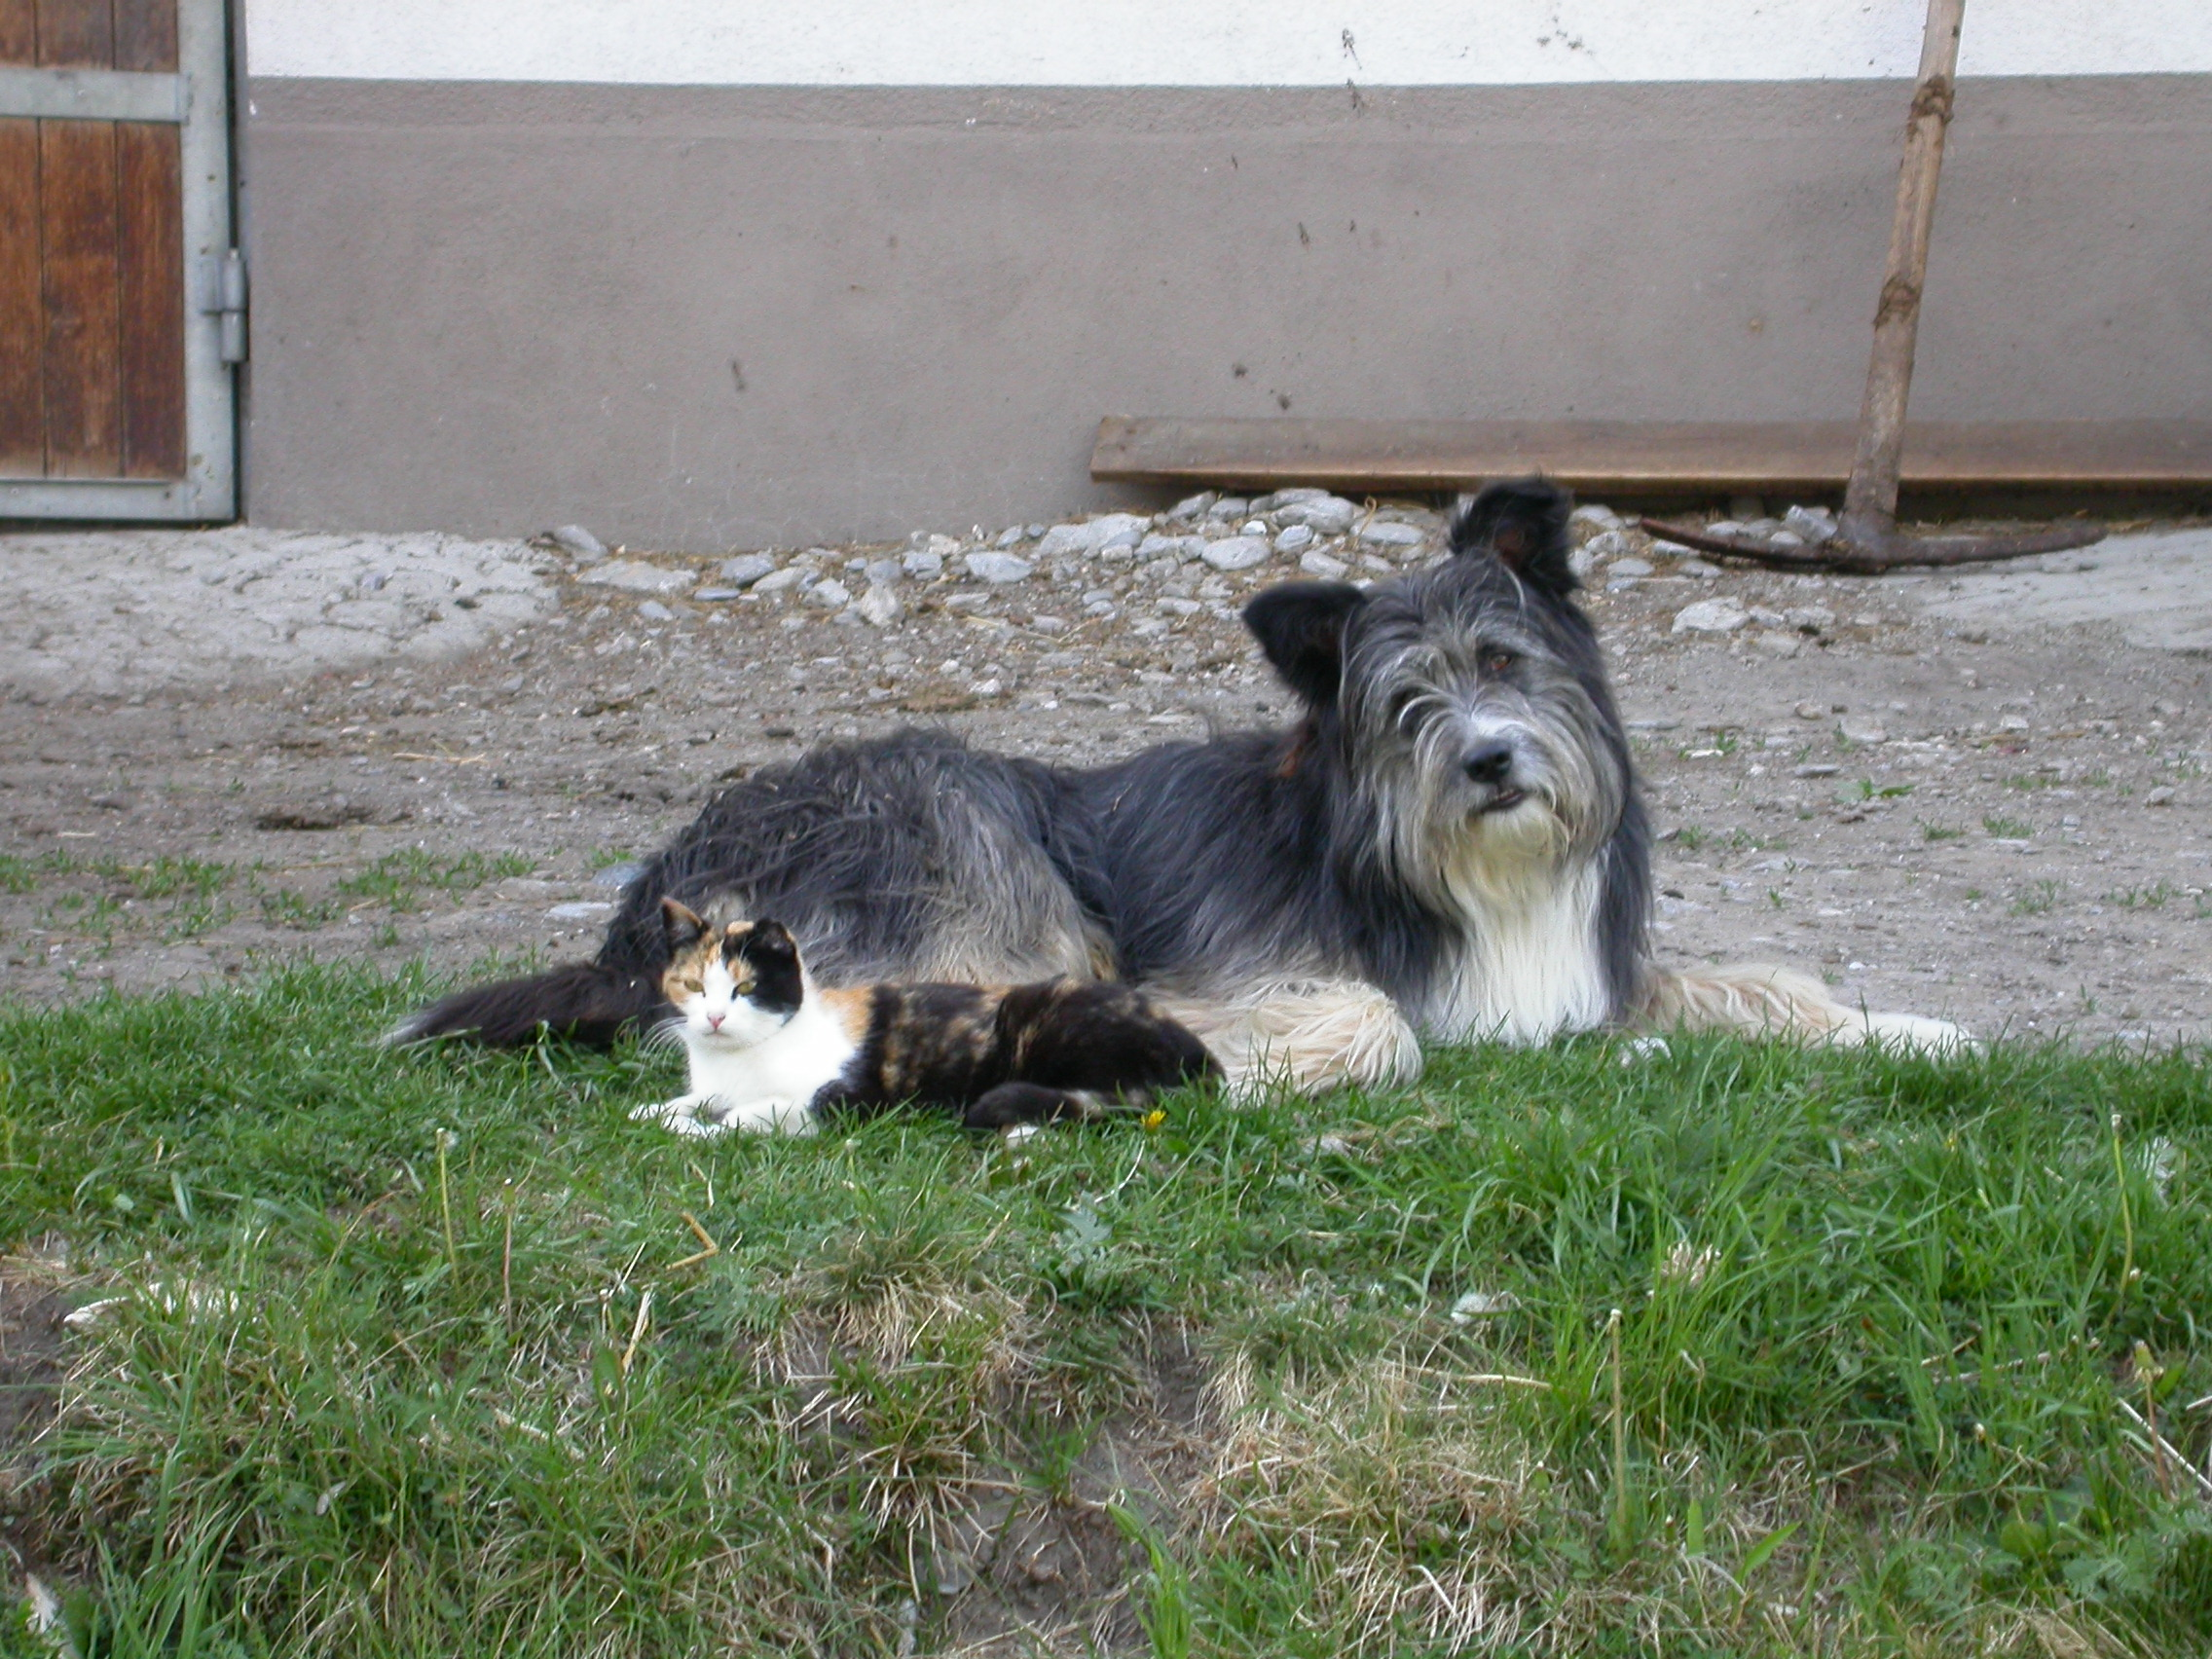 paul dog and cat a fur hair hairs grey feline canine farm animals